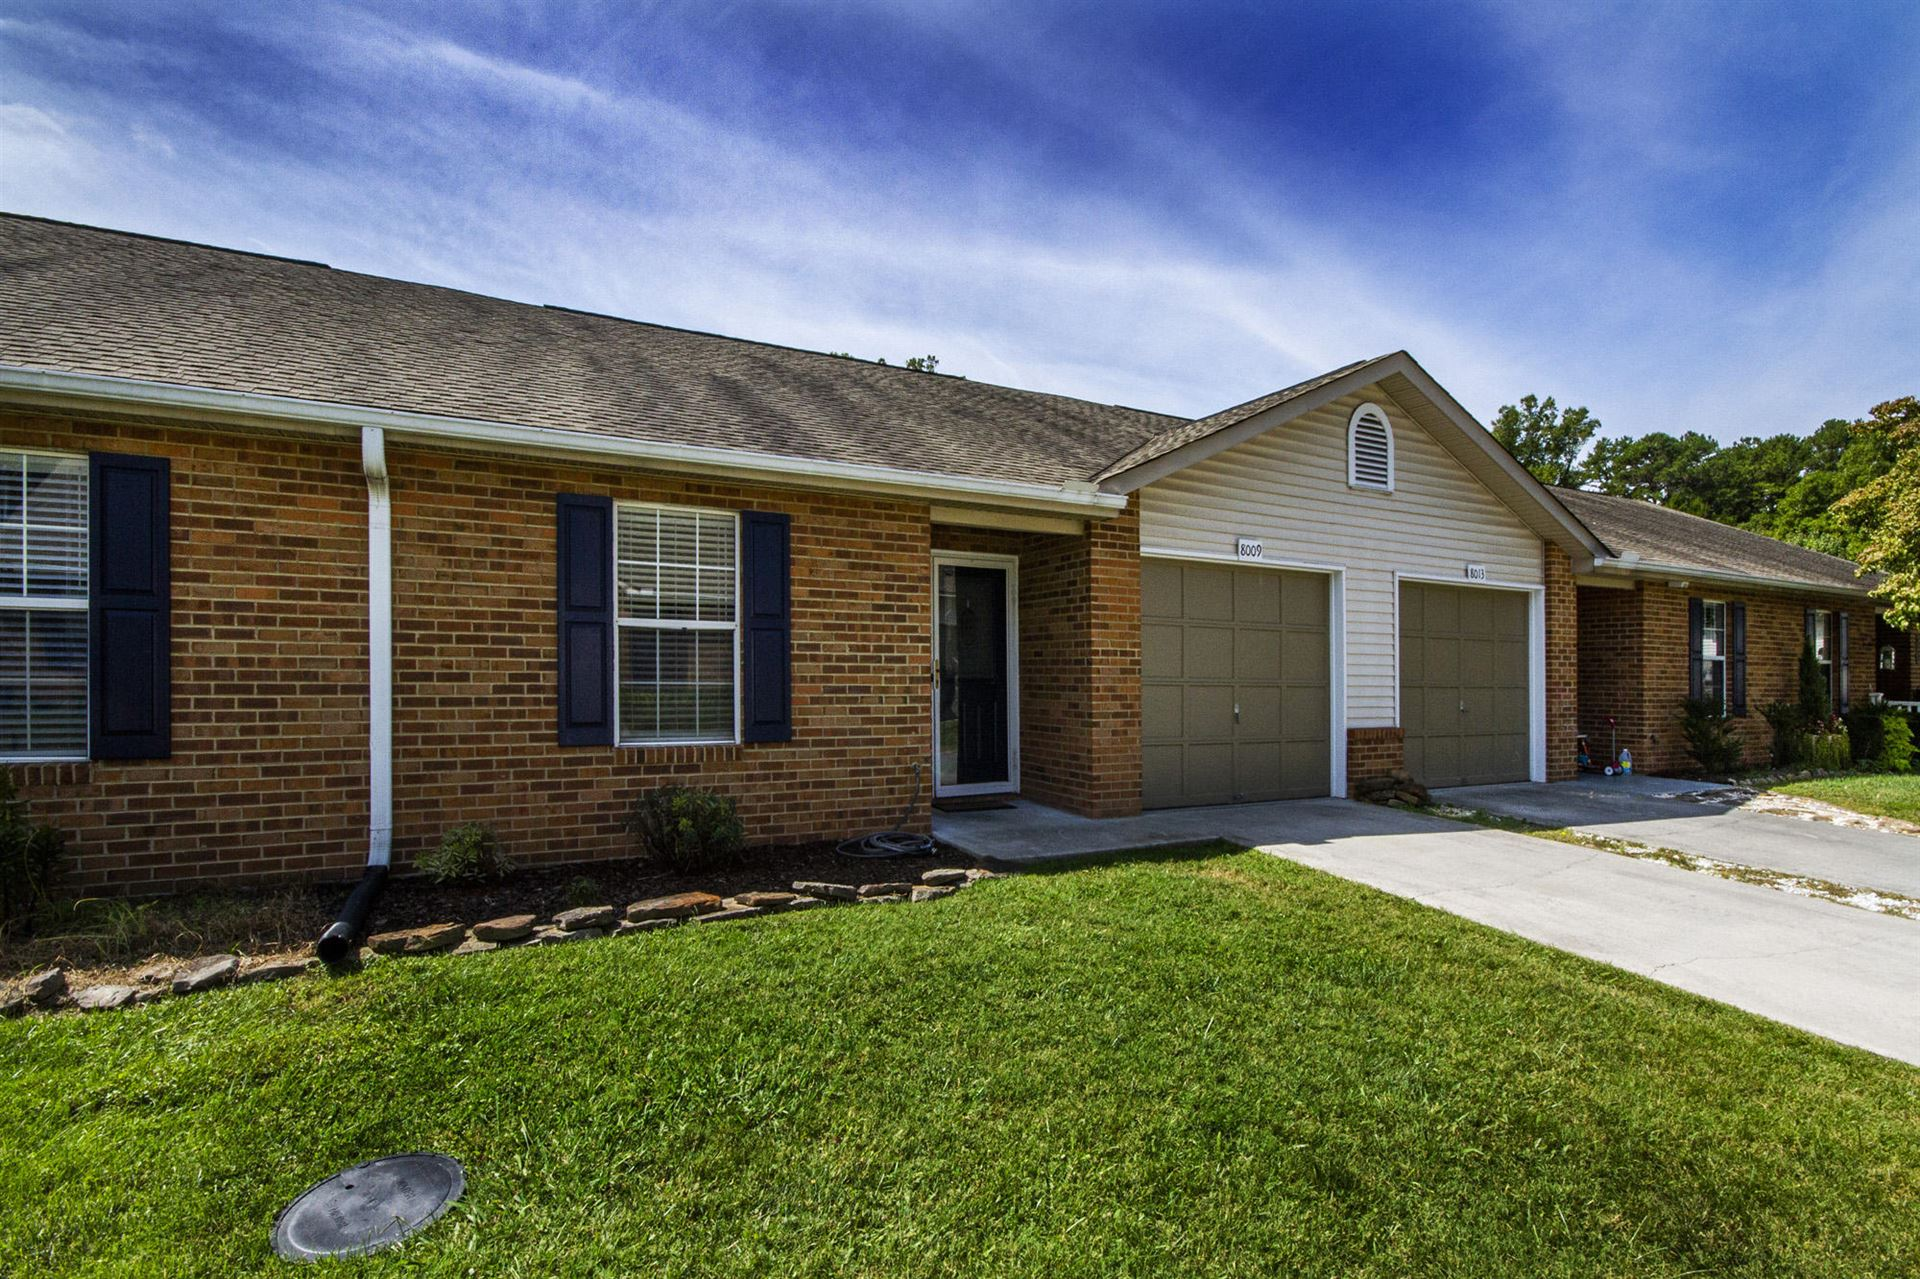 Photo of 8009 Atmore Way, Powell, TN 37849 (MLS # 1130643)